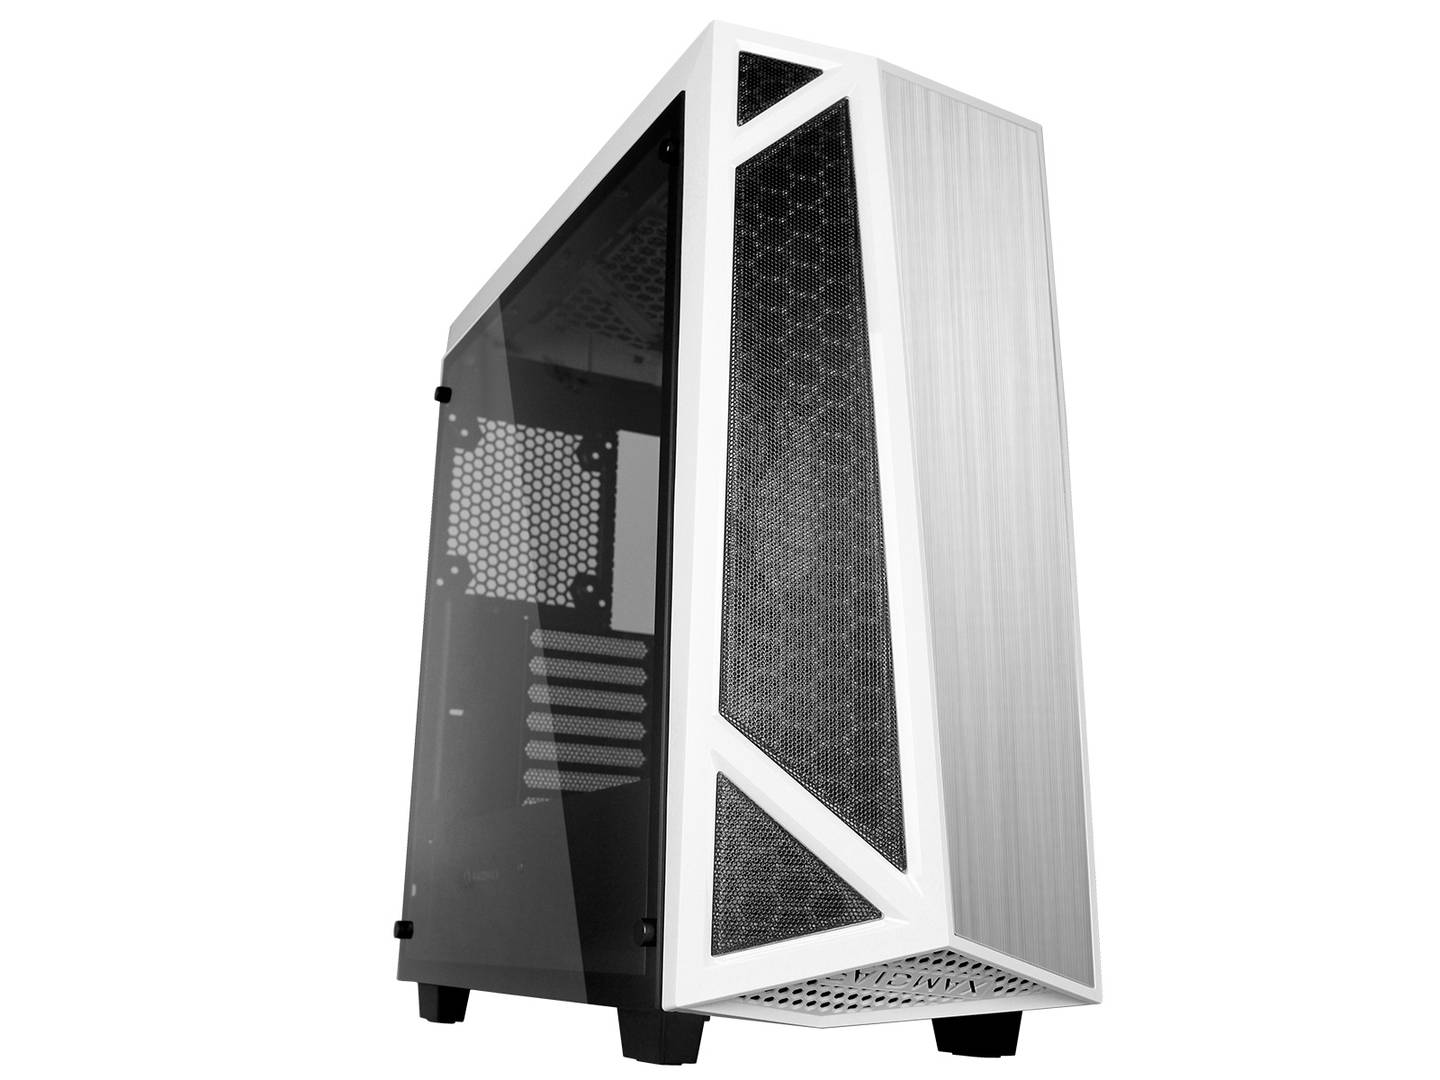 RaidMax Caja Gaming  Sigma I A14 TWS - ATX, Ventana lateral, Ventilador de 140mm LED Azul, 2x USB 3.0, Audio & Sonido Frontal, Blanco